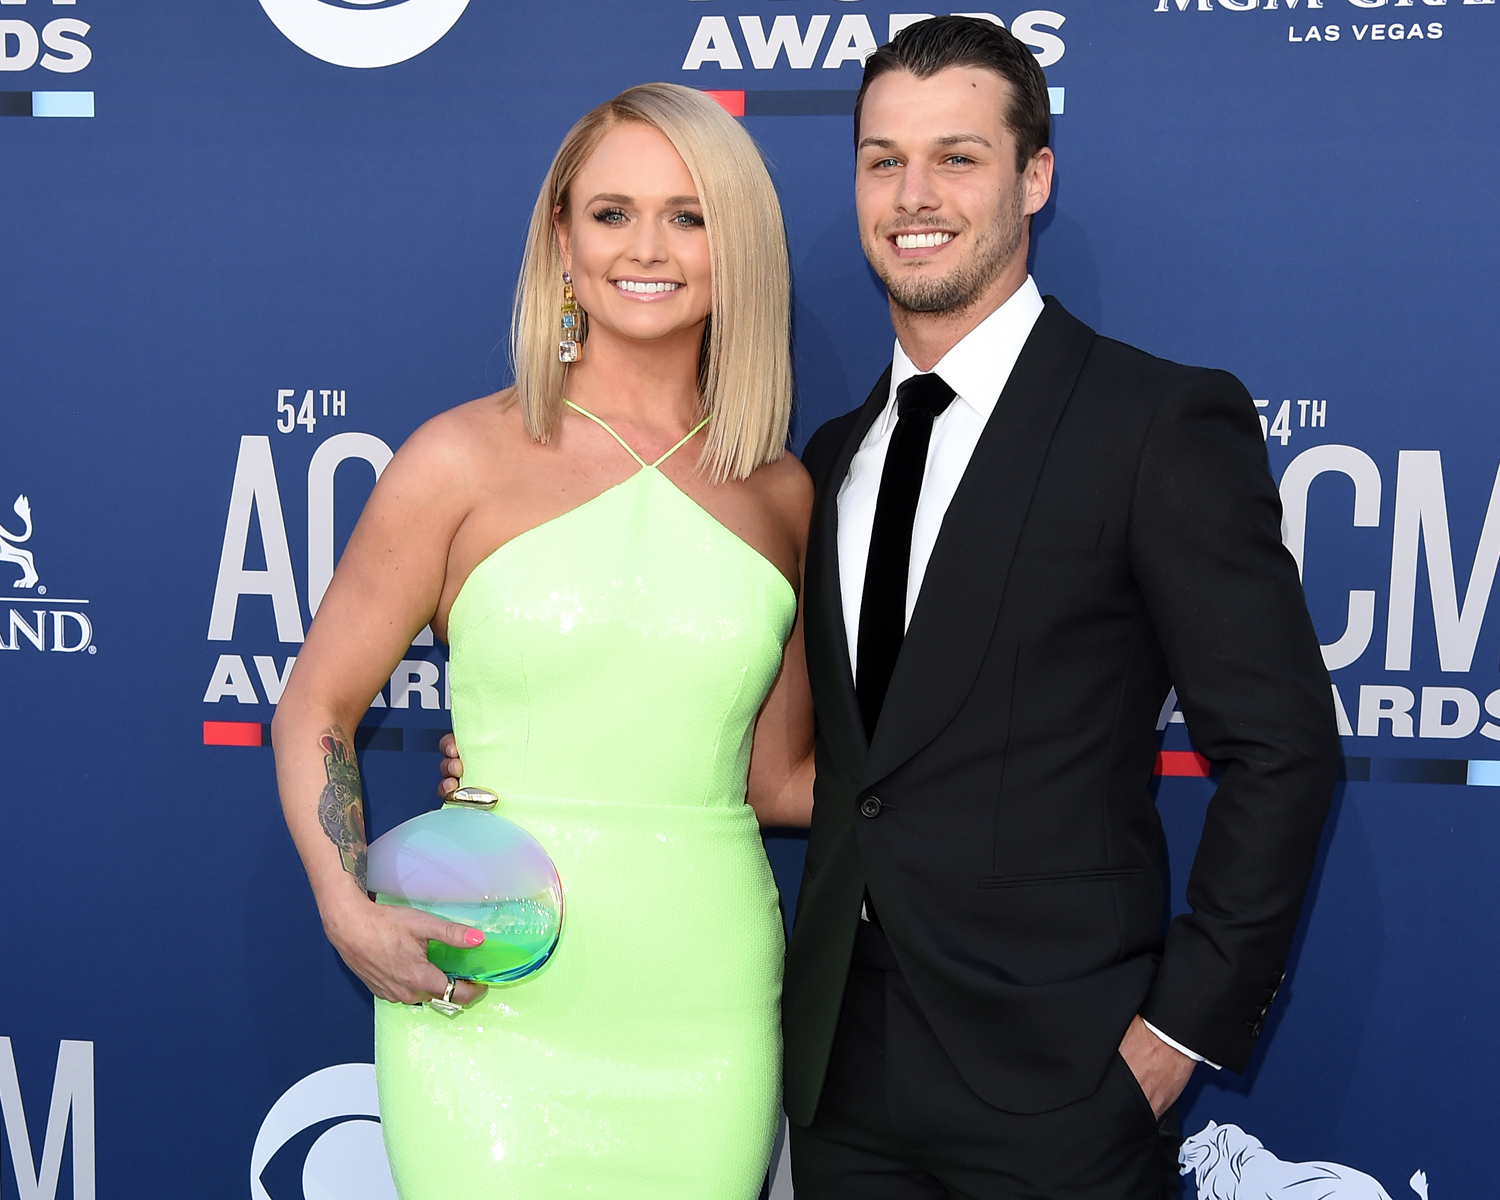 Miranda Lambert And Her Husband Make Their Red Carpet Debut